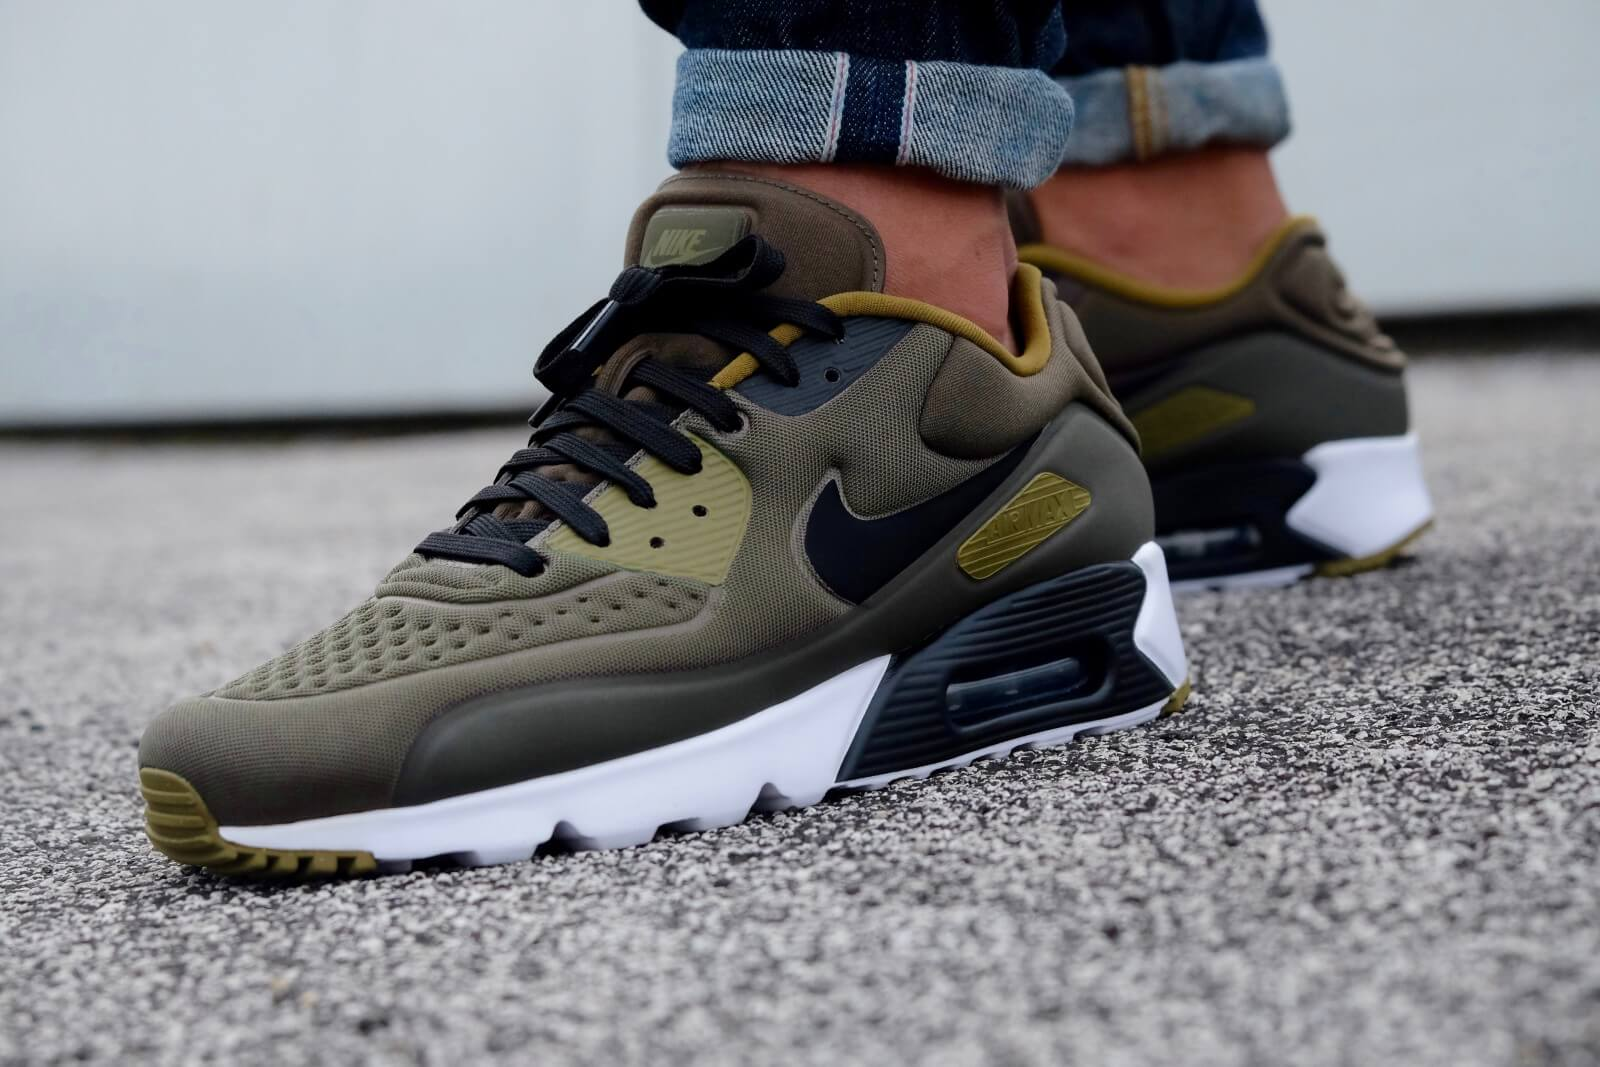 Nike Air Max 90 Ultra Special Edition Cargo Khaki Black Olive Flak White 845039 300